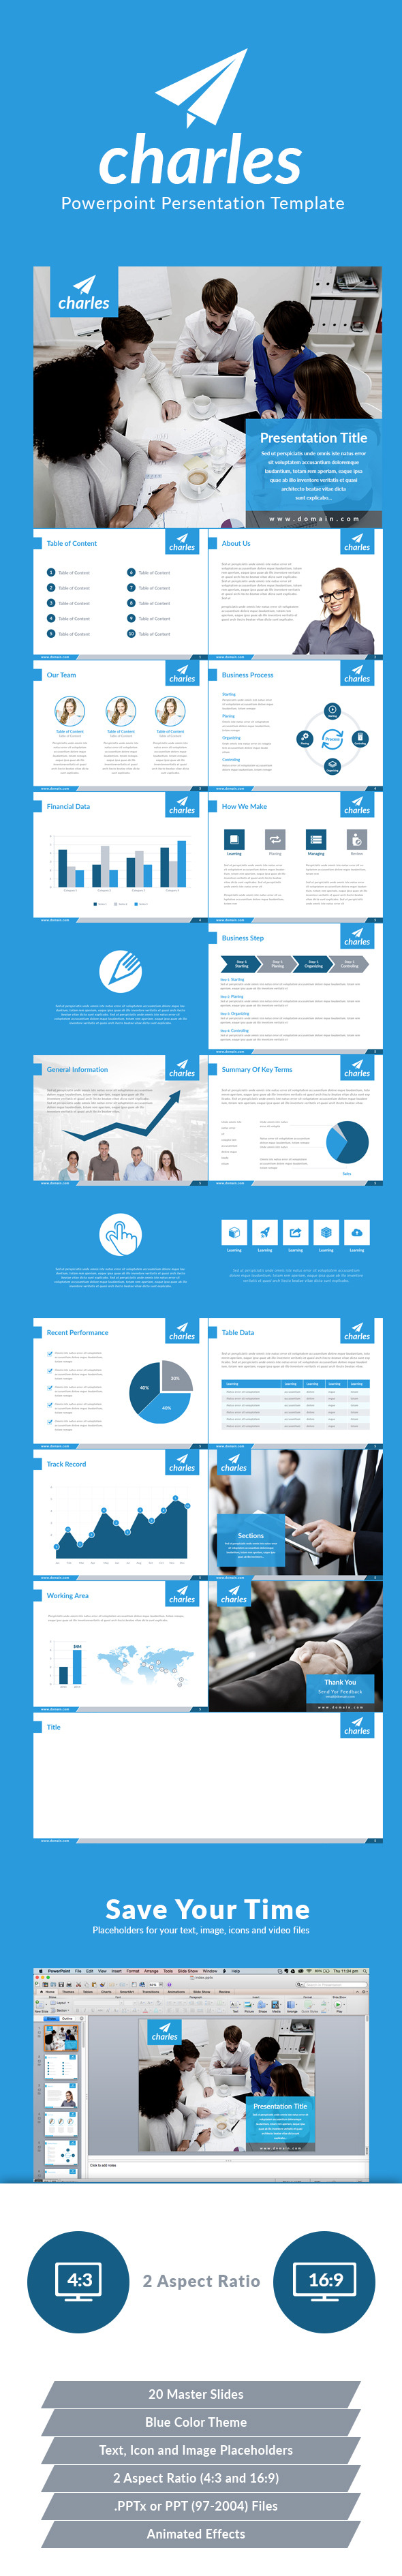 GraphicRiver Charles Powerpoint Presentation Template 11158493